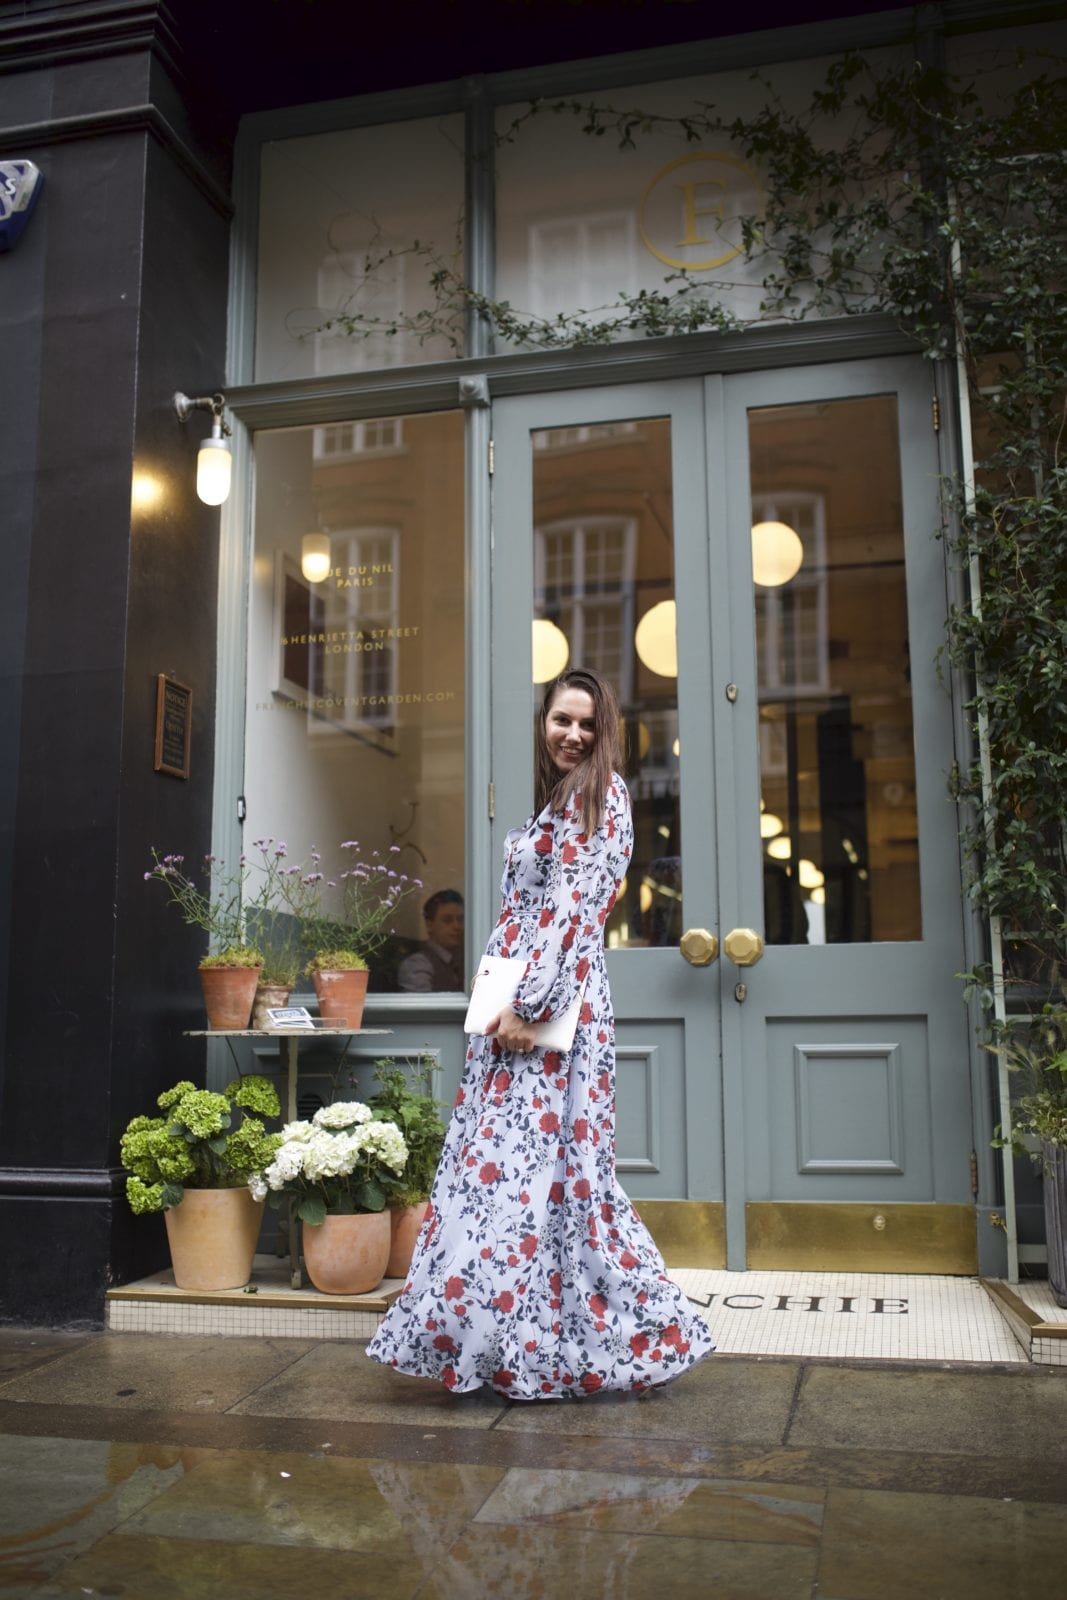 In this photo, Adaleta Avdic is twirling around in a beautiful maxi floral dress from the new Yumi Kim collection, in the city of London close to Covent Garden.